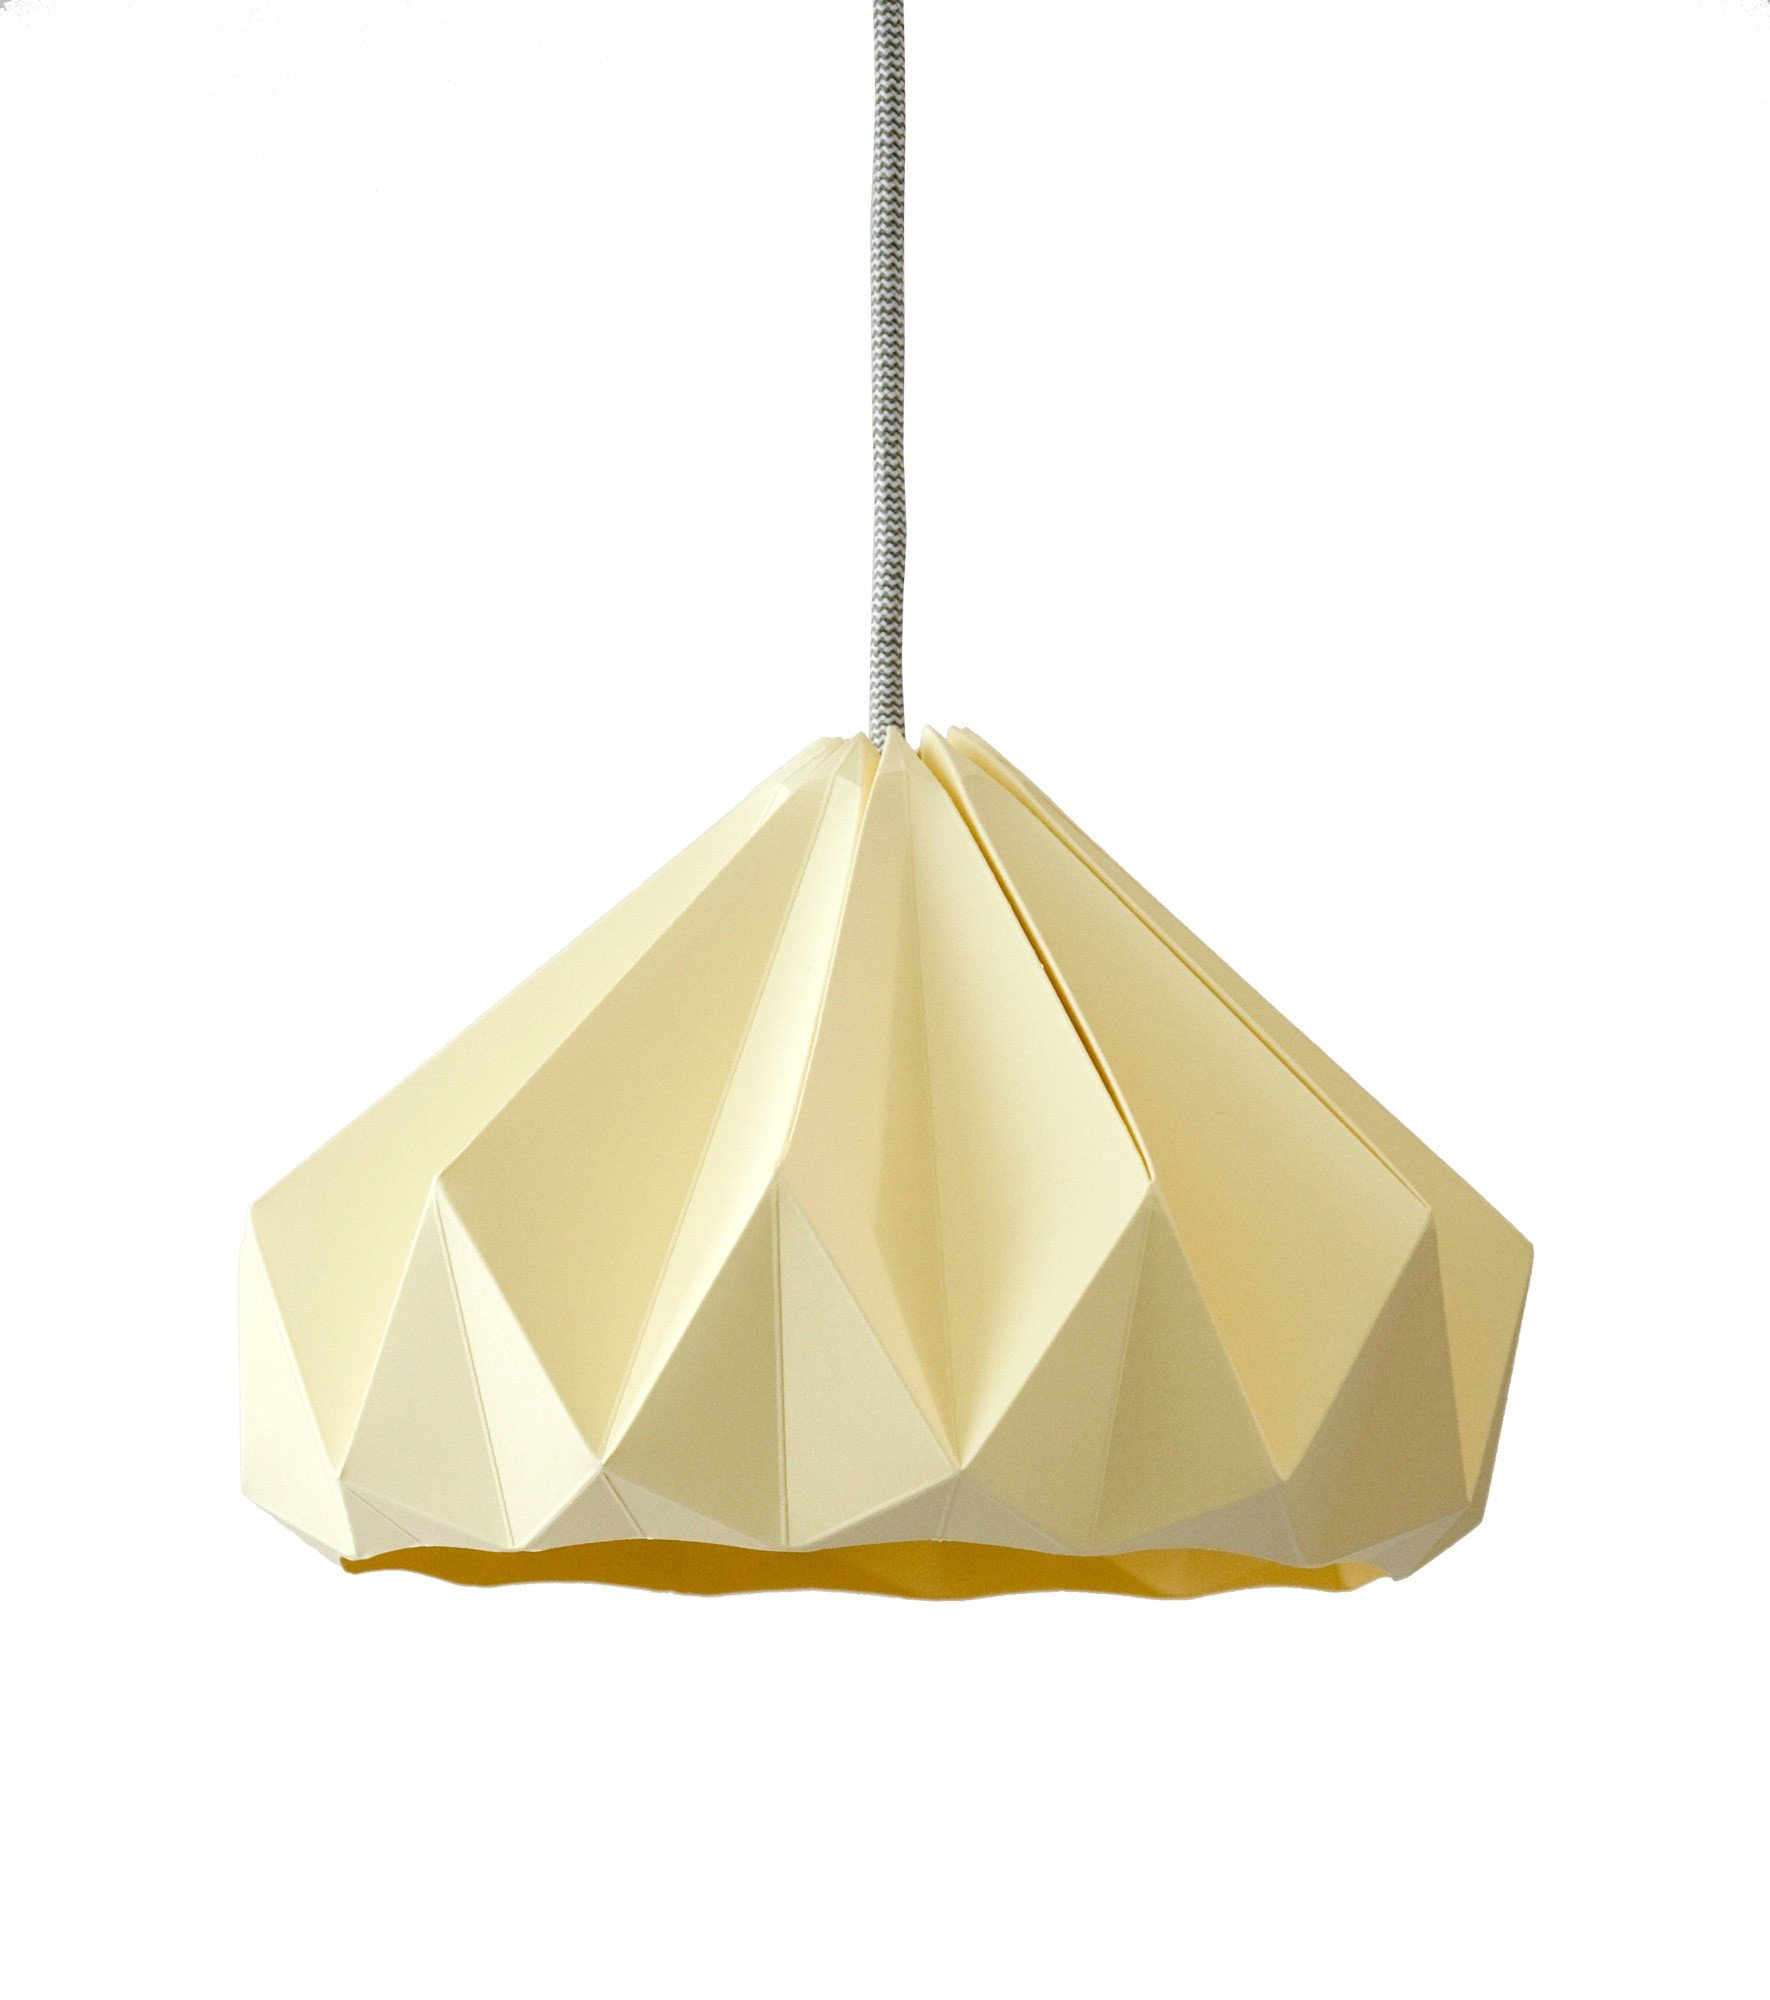 Lampa Chestnut canary yellow - 39237